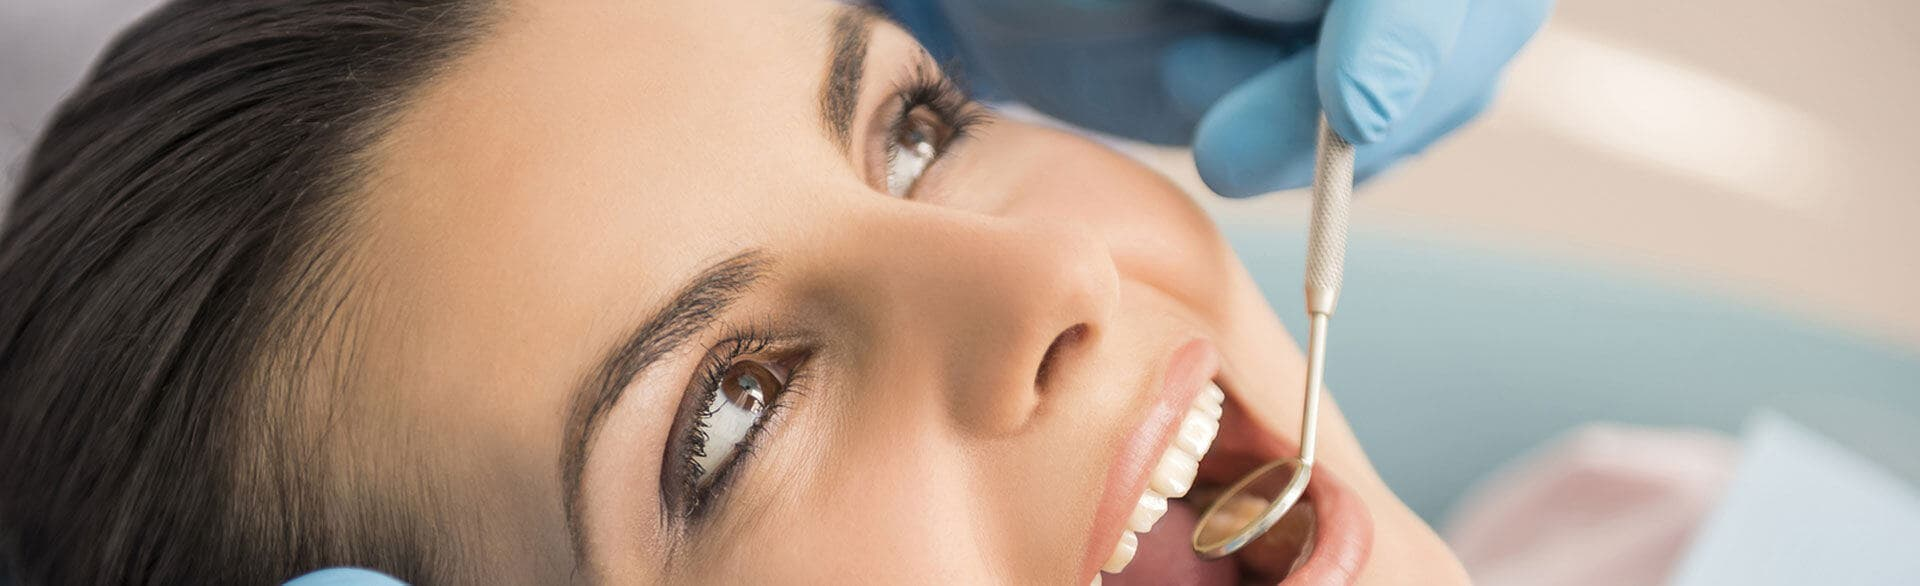 Services - Amber Hills Dental Henderson, NV